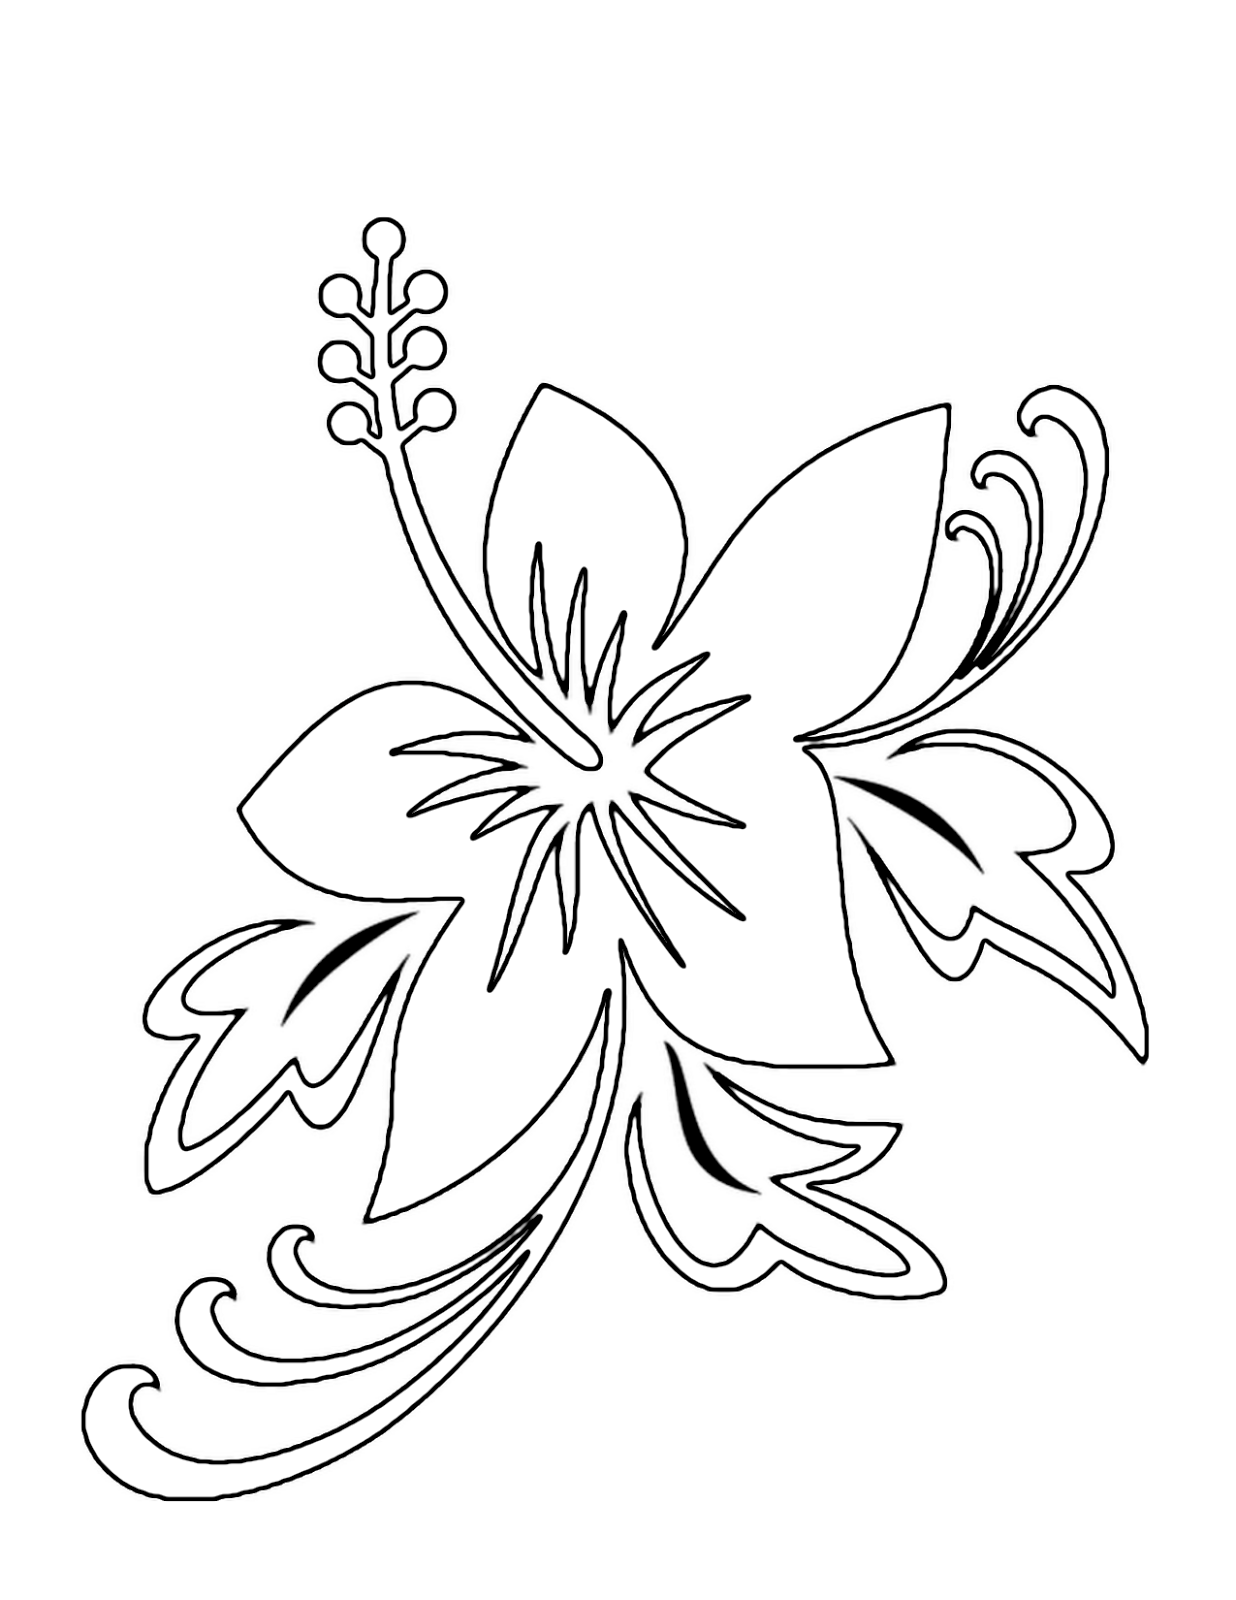 free printable flowers coloring pages - Free flower coloring pages from theKidzpage -- Printable